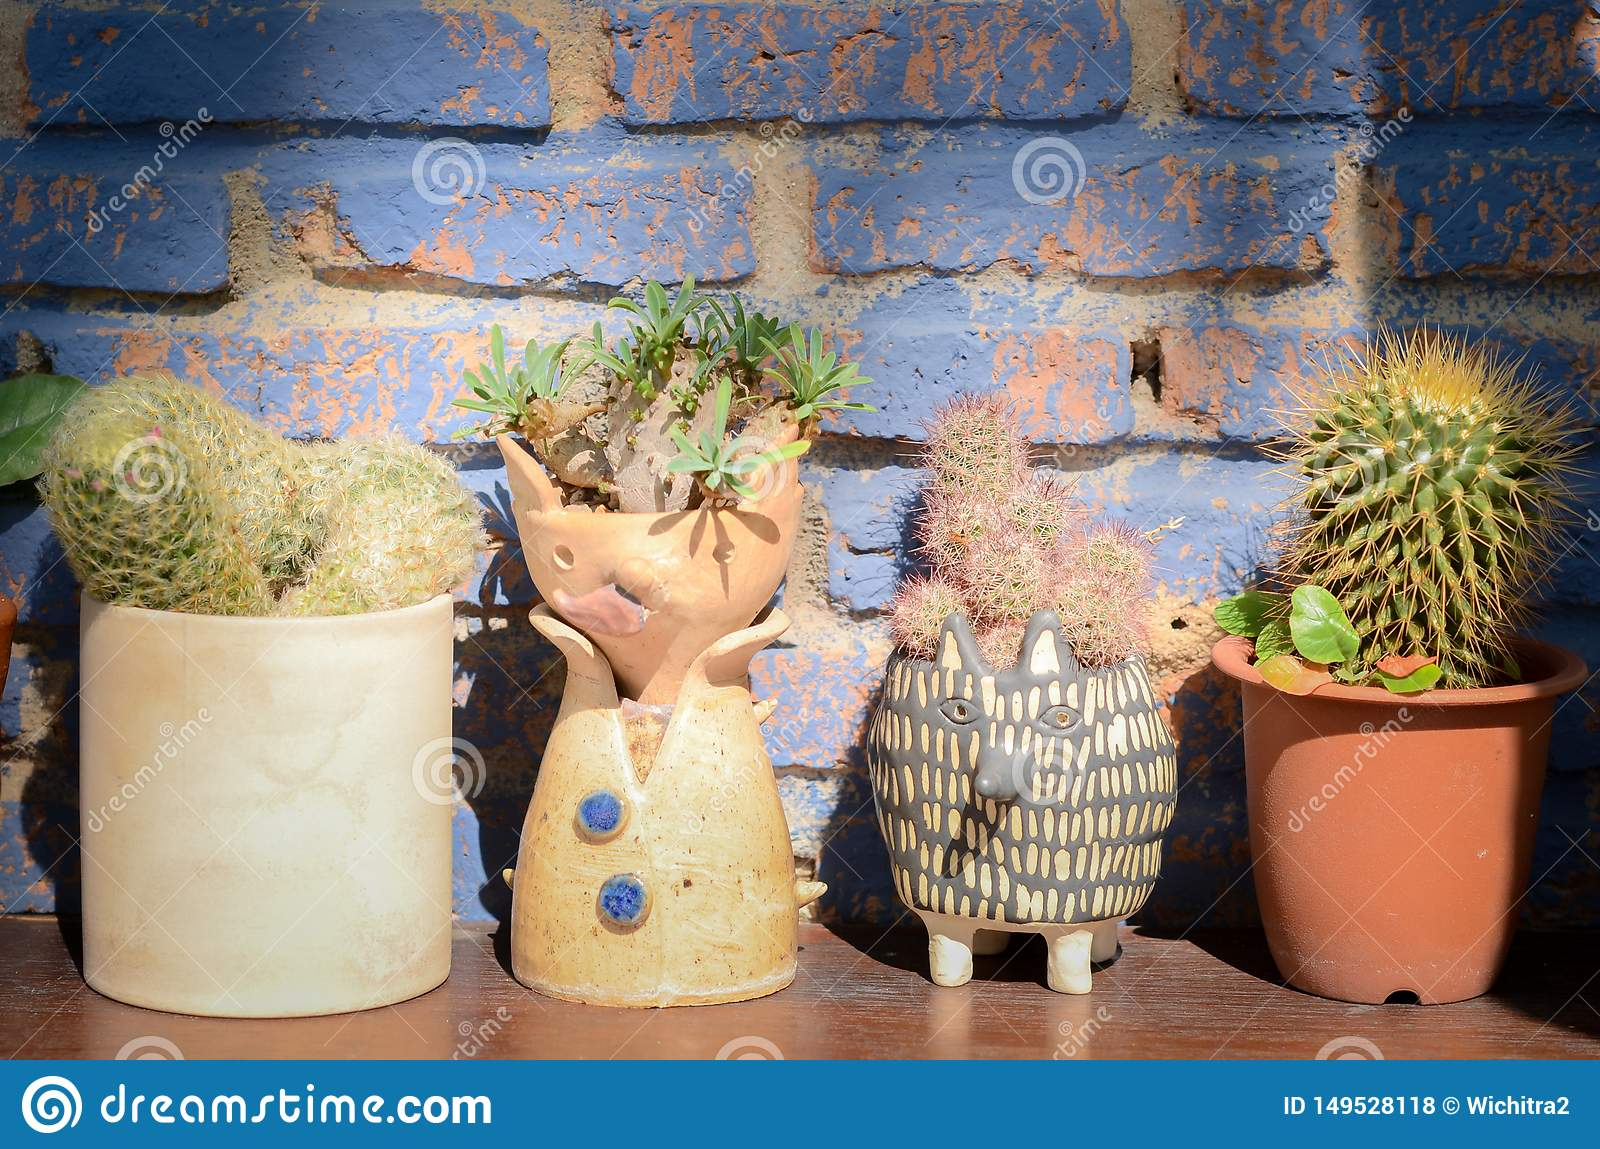 Collection of various cactus and succulent plants in different pots. The rustic interior home decor